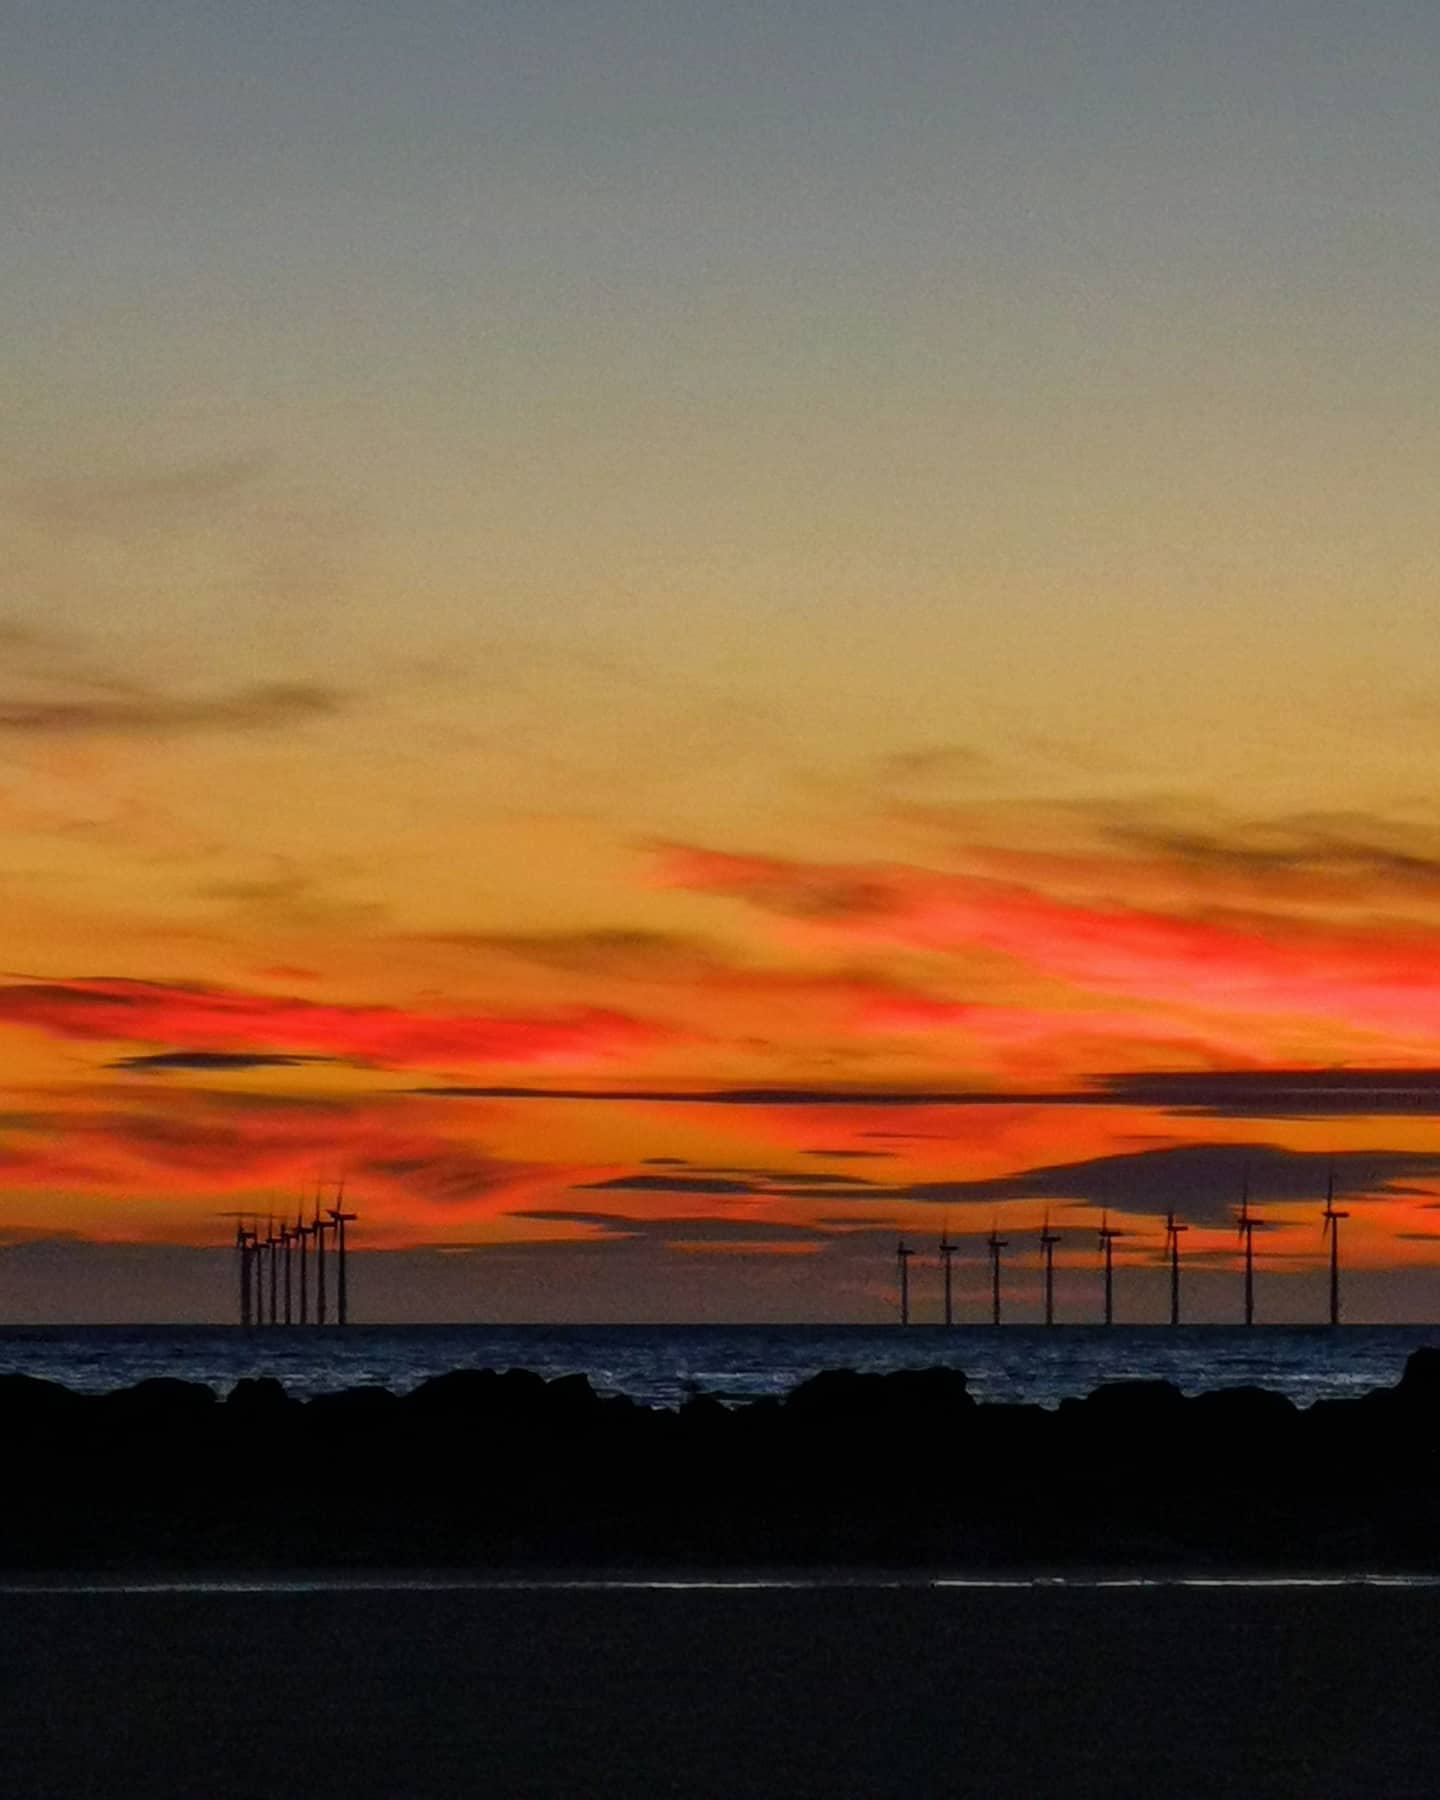 Wow, to the sunset at leasowe tonight, this captured with no editing. I had a wonderful swim